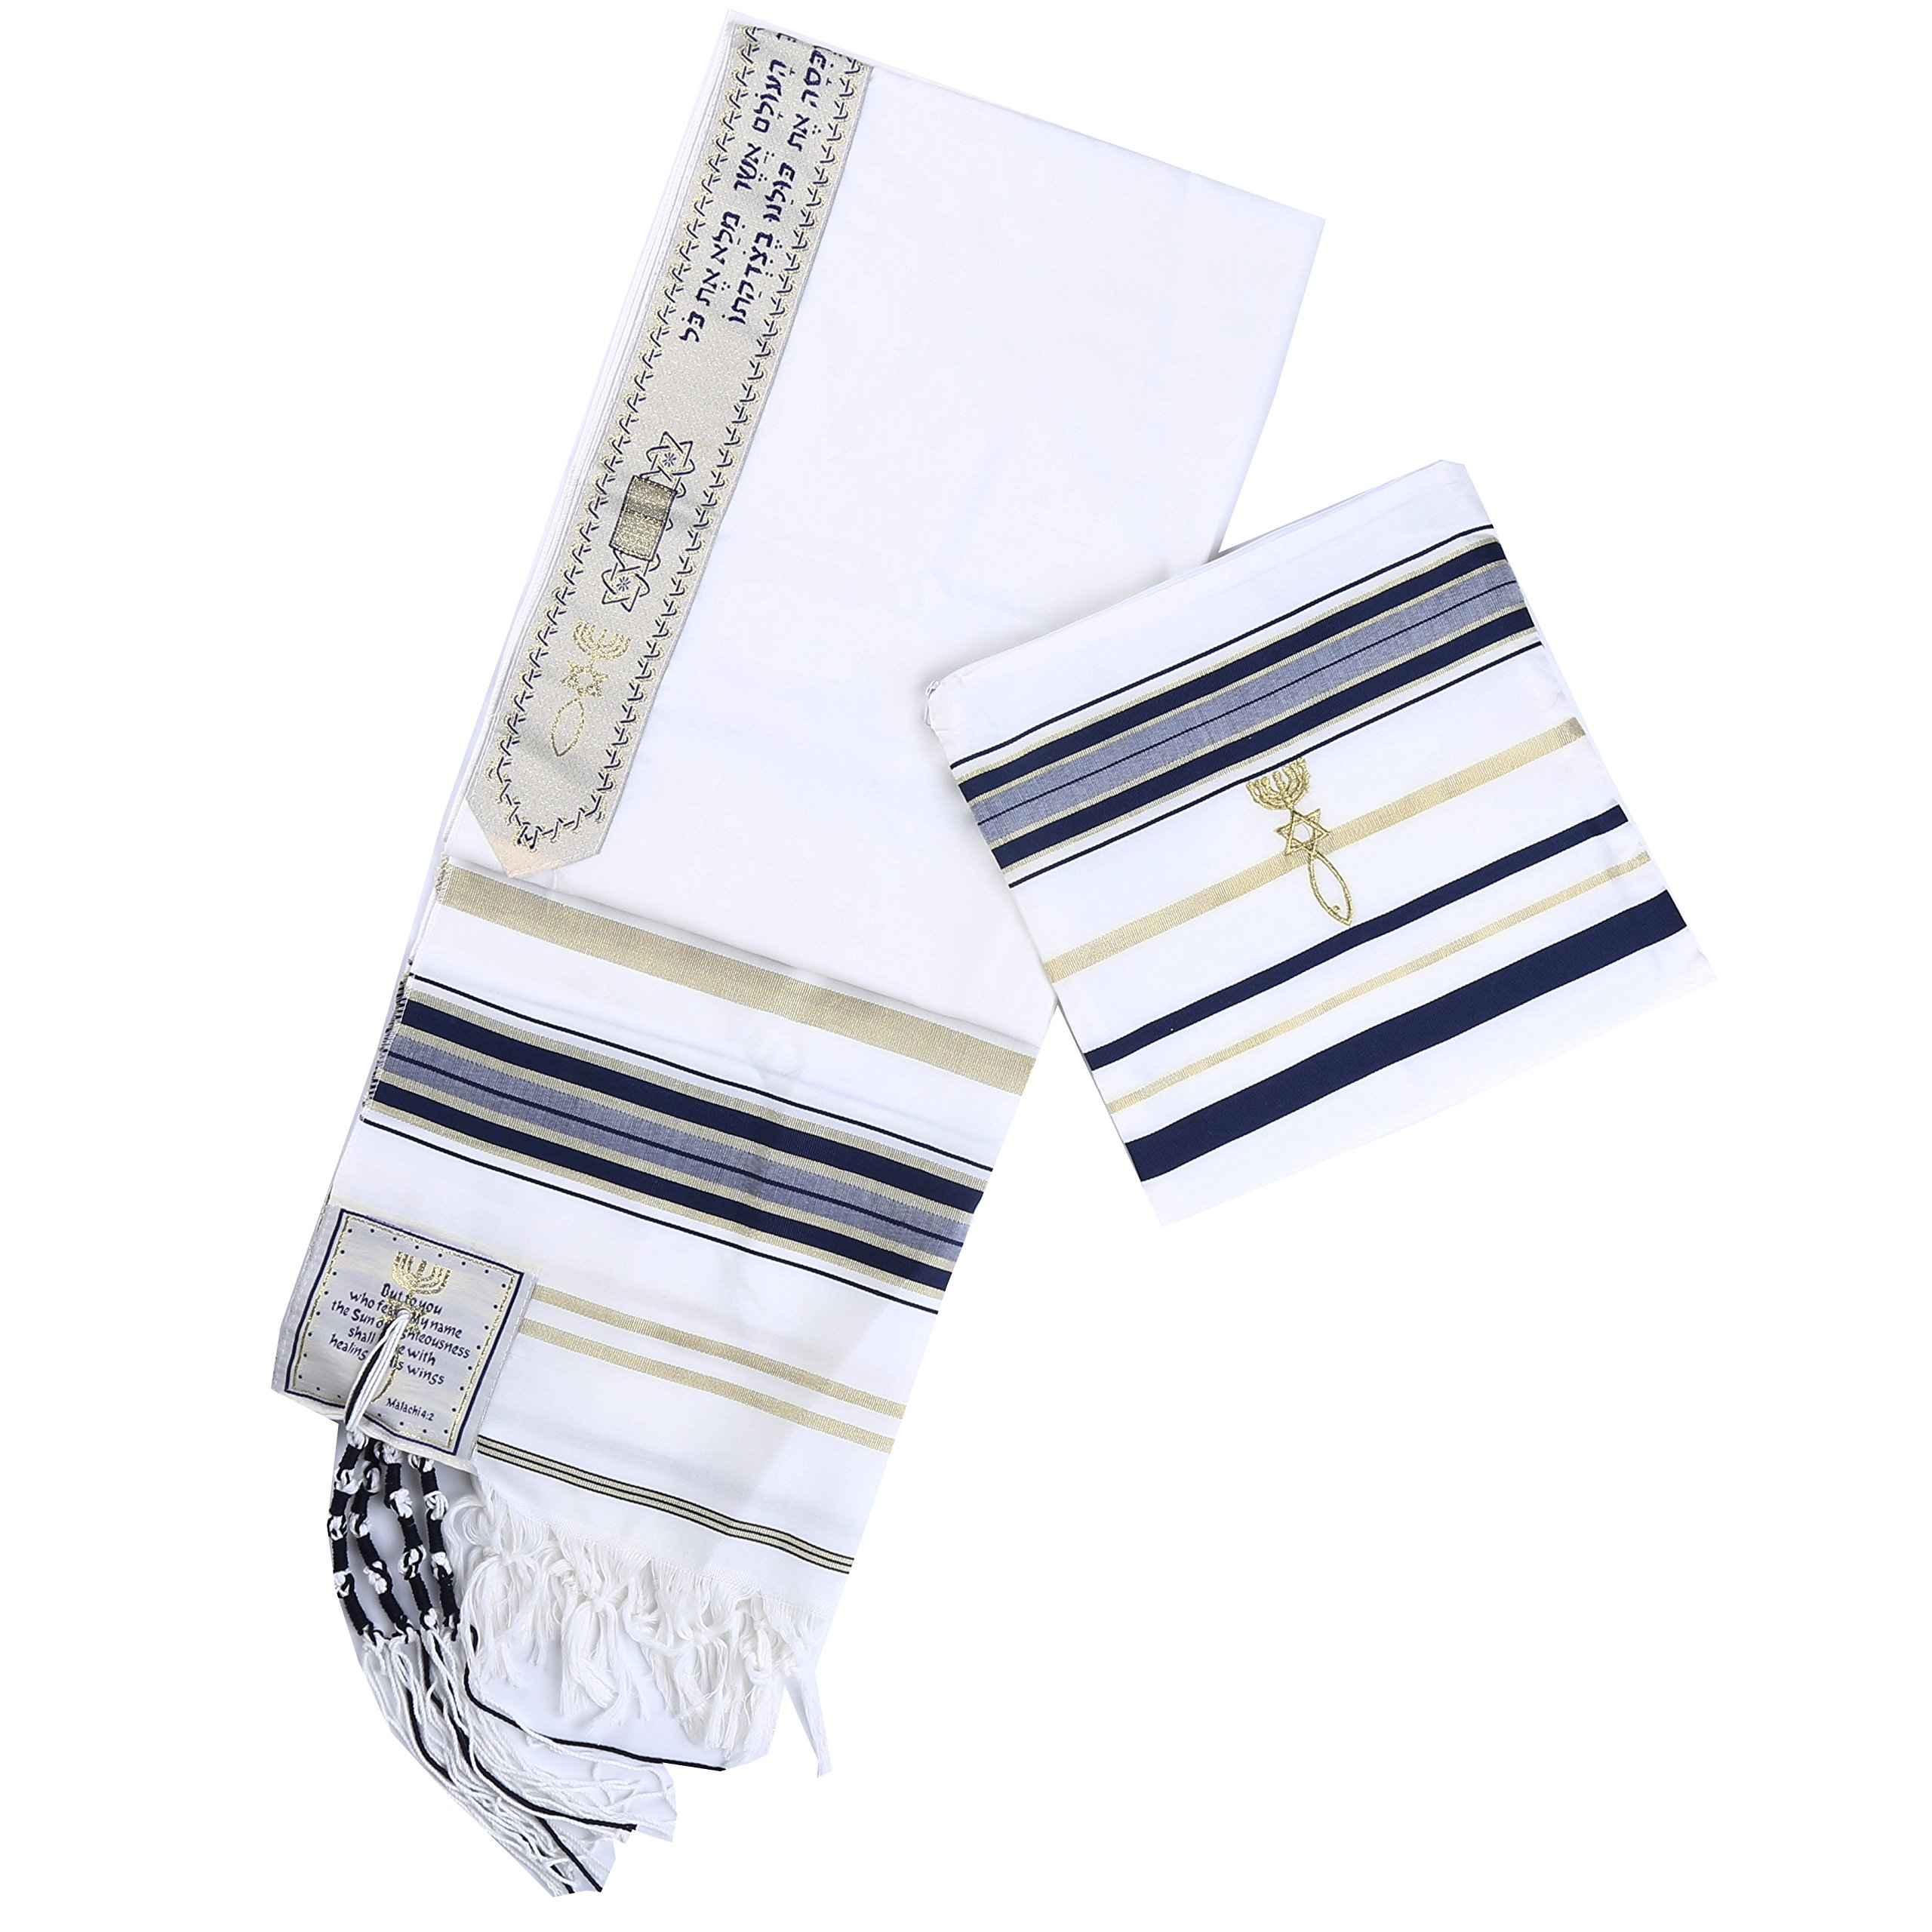 Star Gifts Navy blue Messianic Tallit Prayer Shawl 72'' X 22'' with Matching bag